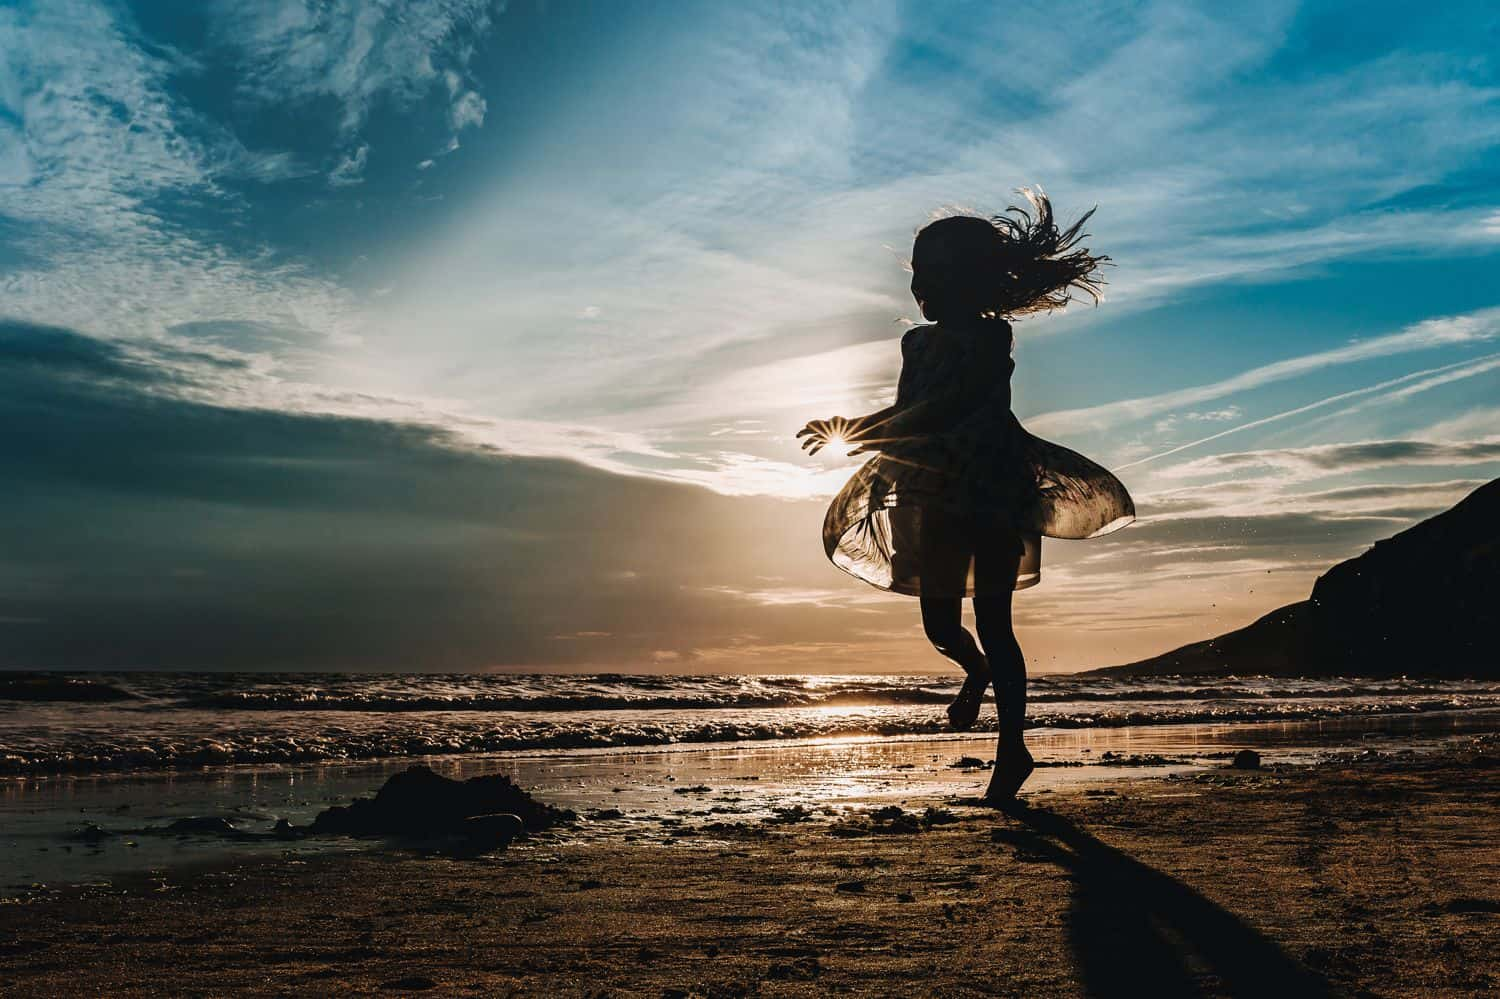 Silhouette of a little girl in a flowing dress running along the beach at sunset.